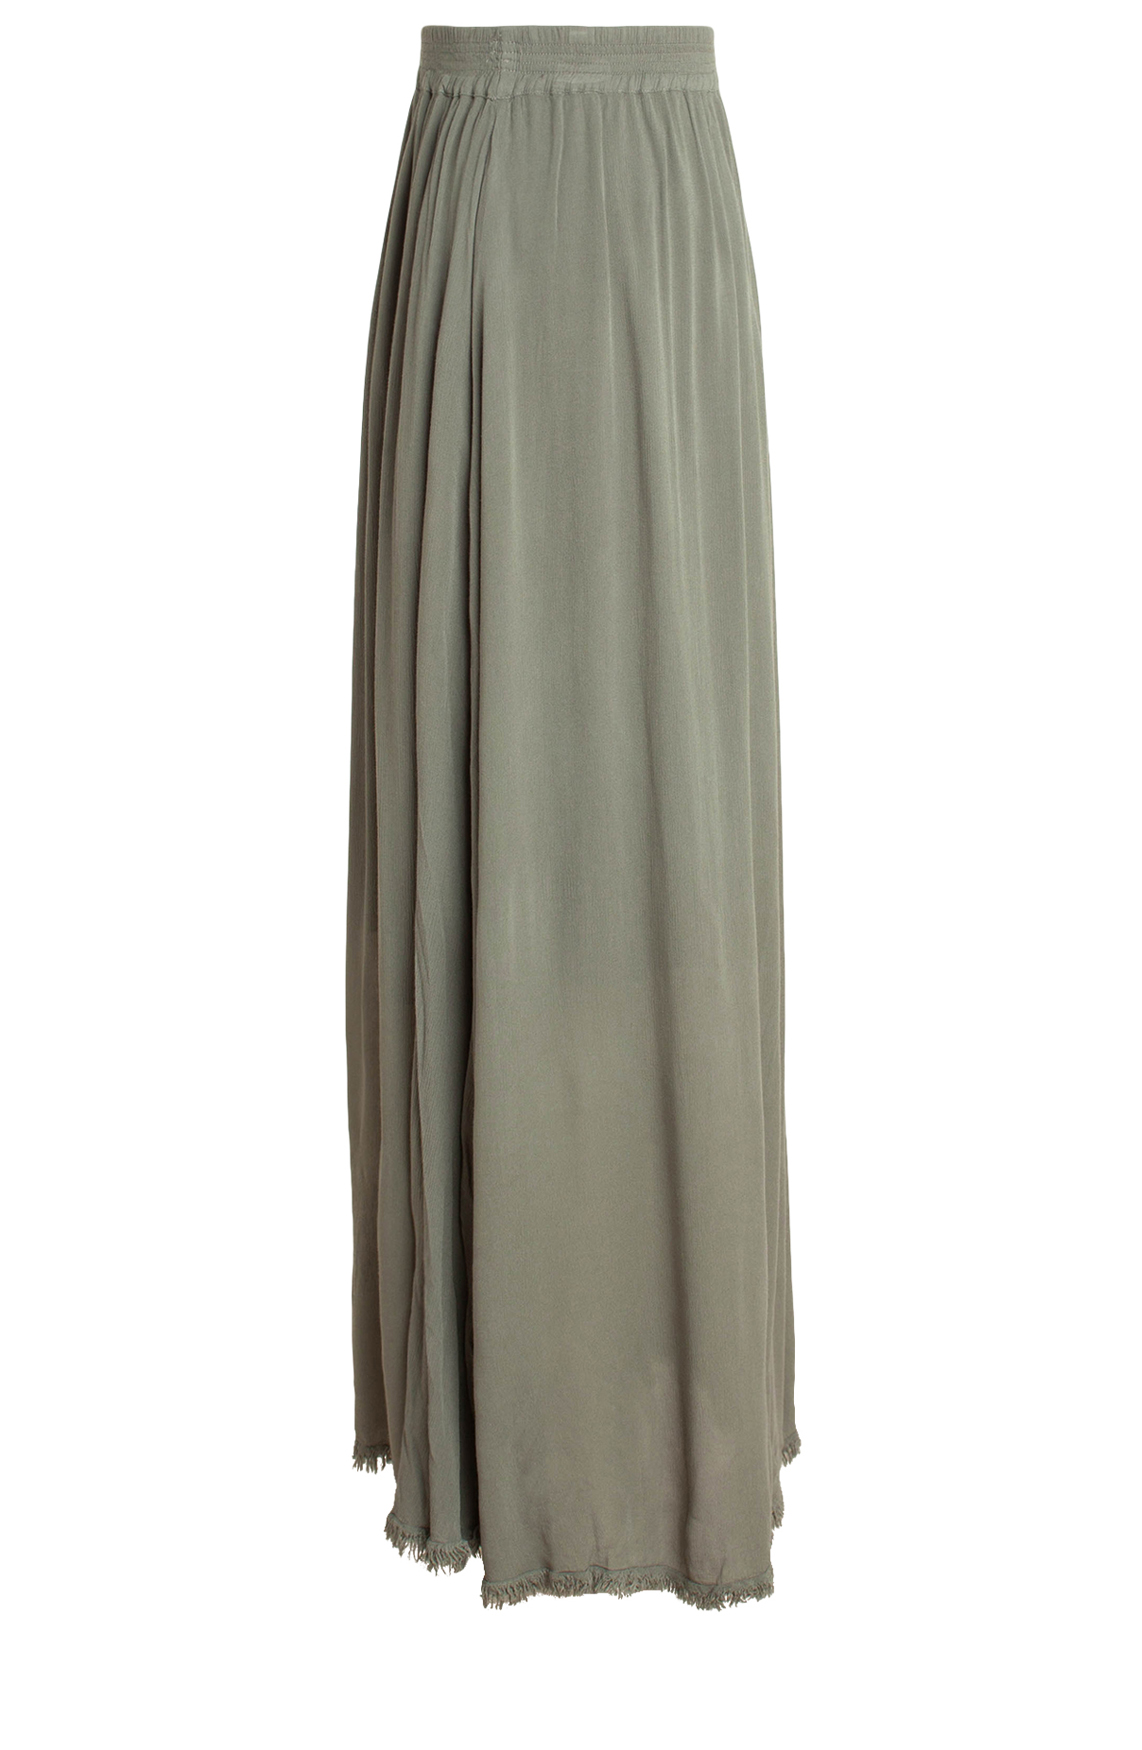 Moscow Dames Long skirt groen